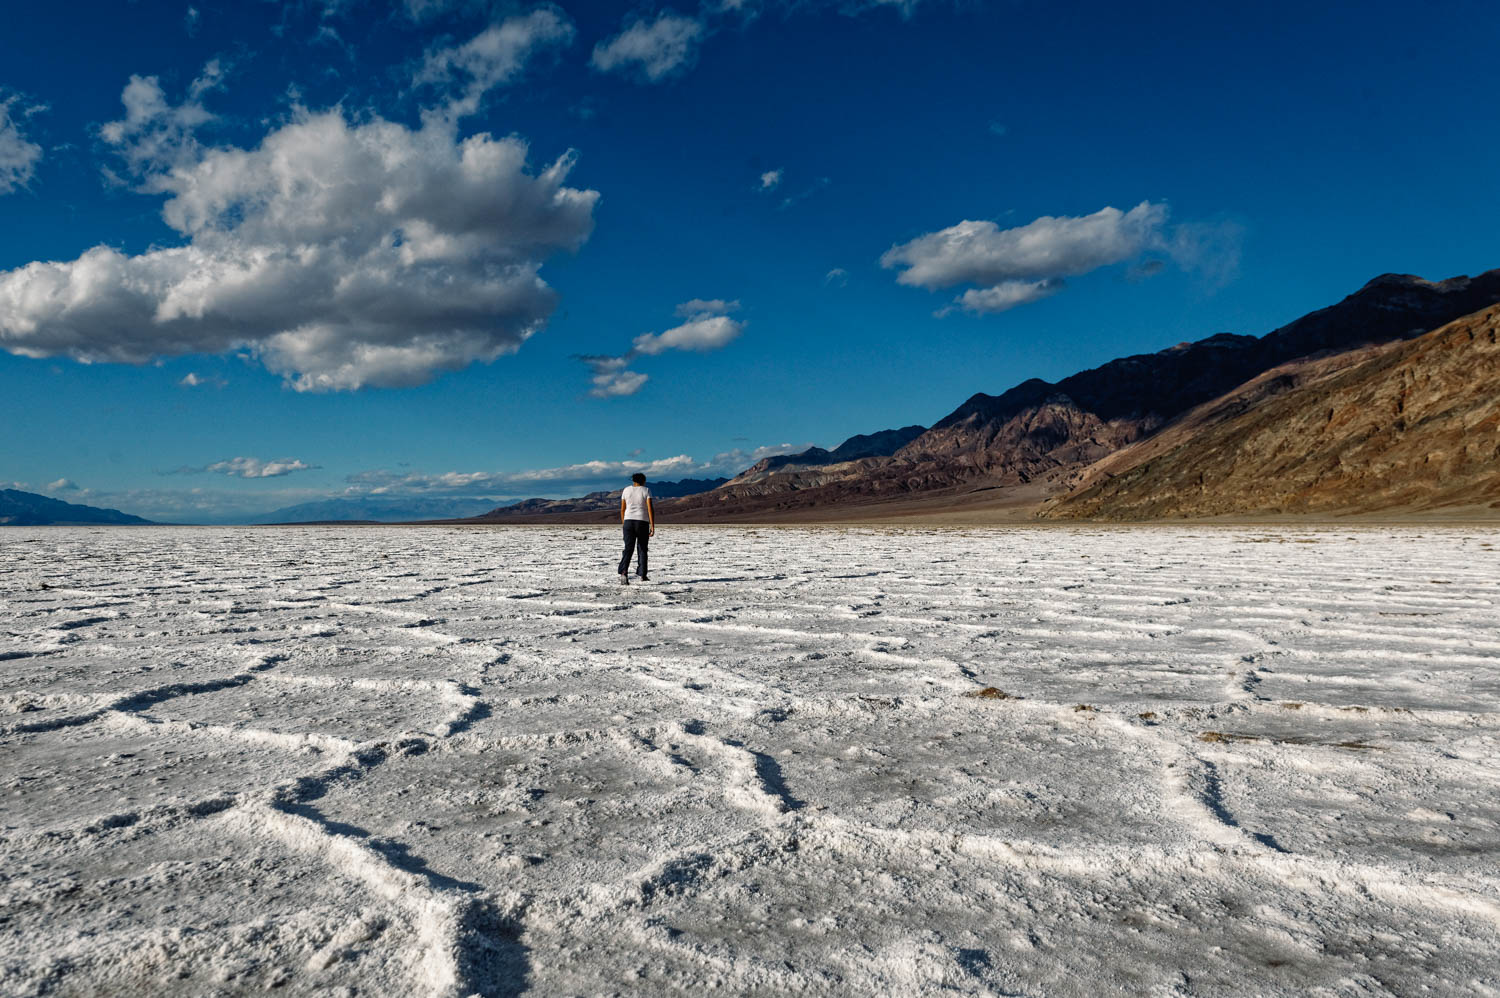 Most people know that Badwater Basin in Death Valley National Park is the lowest point in North America (282 ft below sea level), but there's something even more fascinating about that place. When rainstorms flood the valley bottom like it did in the last few weeks, the salt expanse is covered with a thin sheet of standing water. Each newly-formed lake does not last long, because the 1.9 inches of average rainfall is overwhelmed by a 150-inch annual evaporation rate. This means that even a 12-foot-deep, 30-mile-long lake would dry up in a single year!!! How crazy is that?